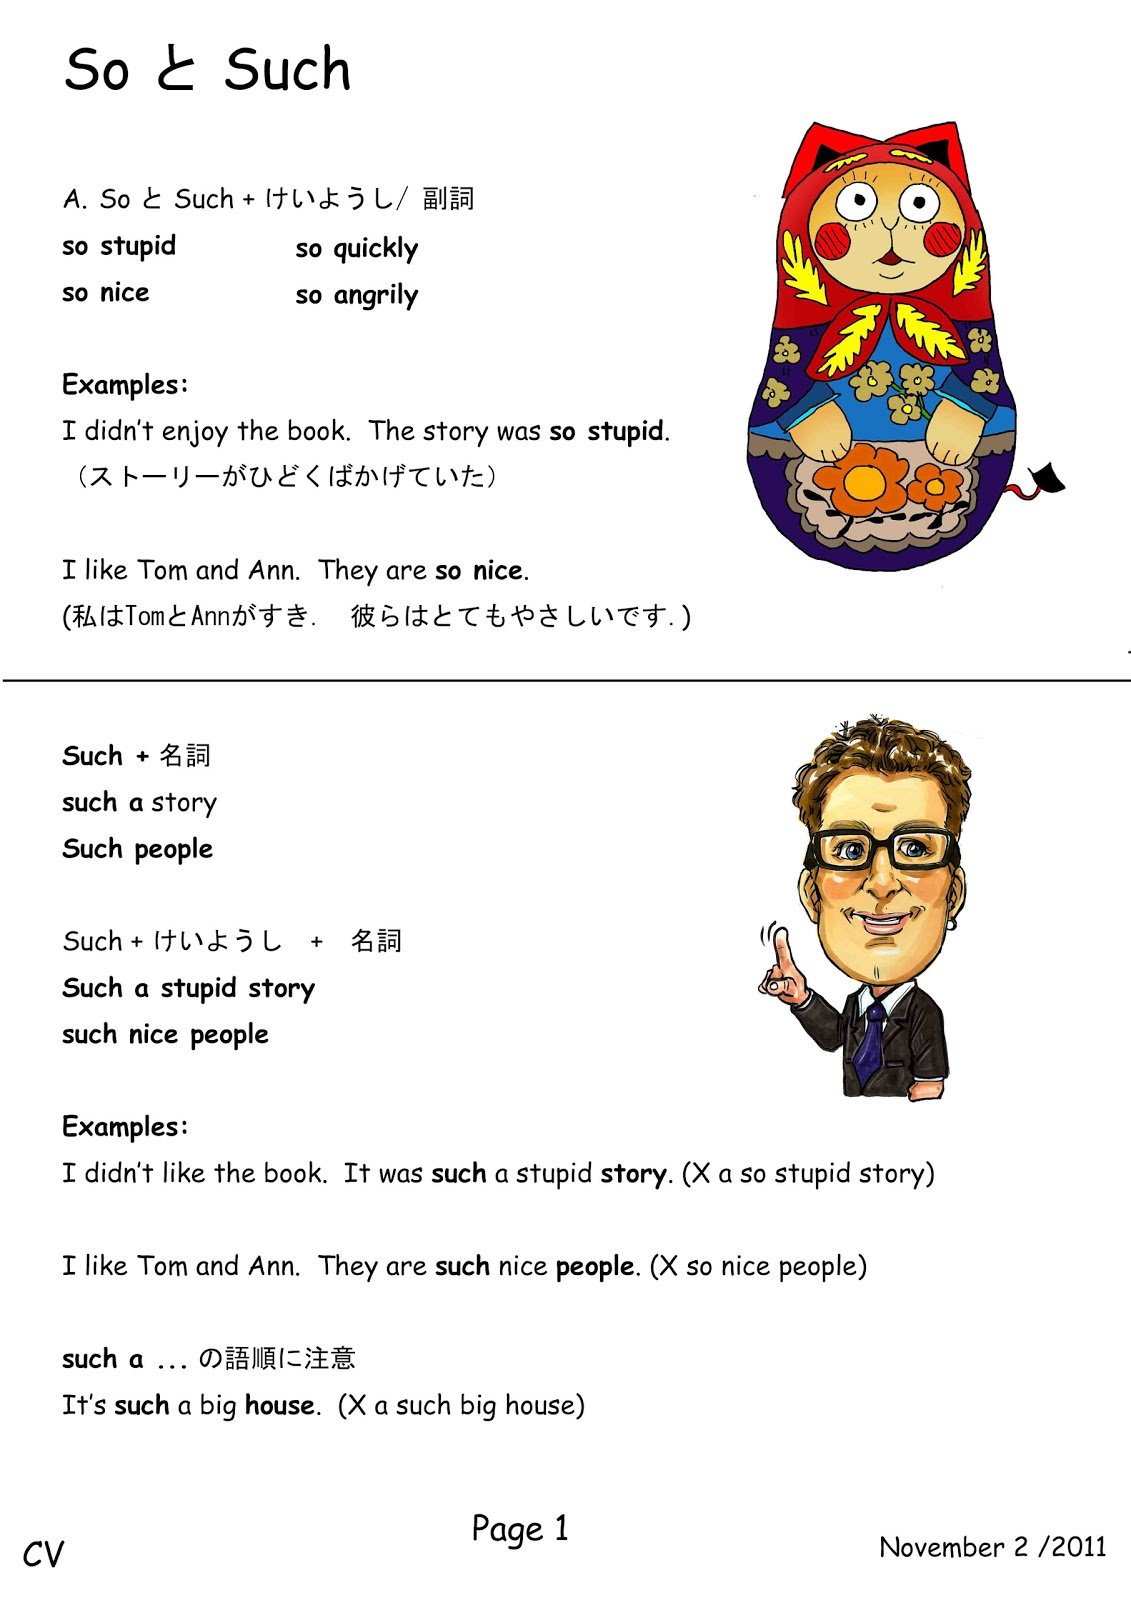 Canadian Voice English School Nagano So And Such